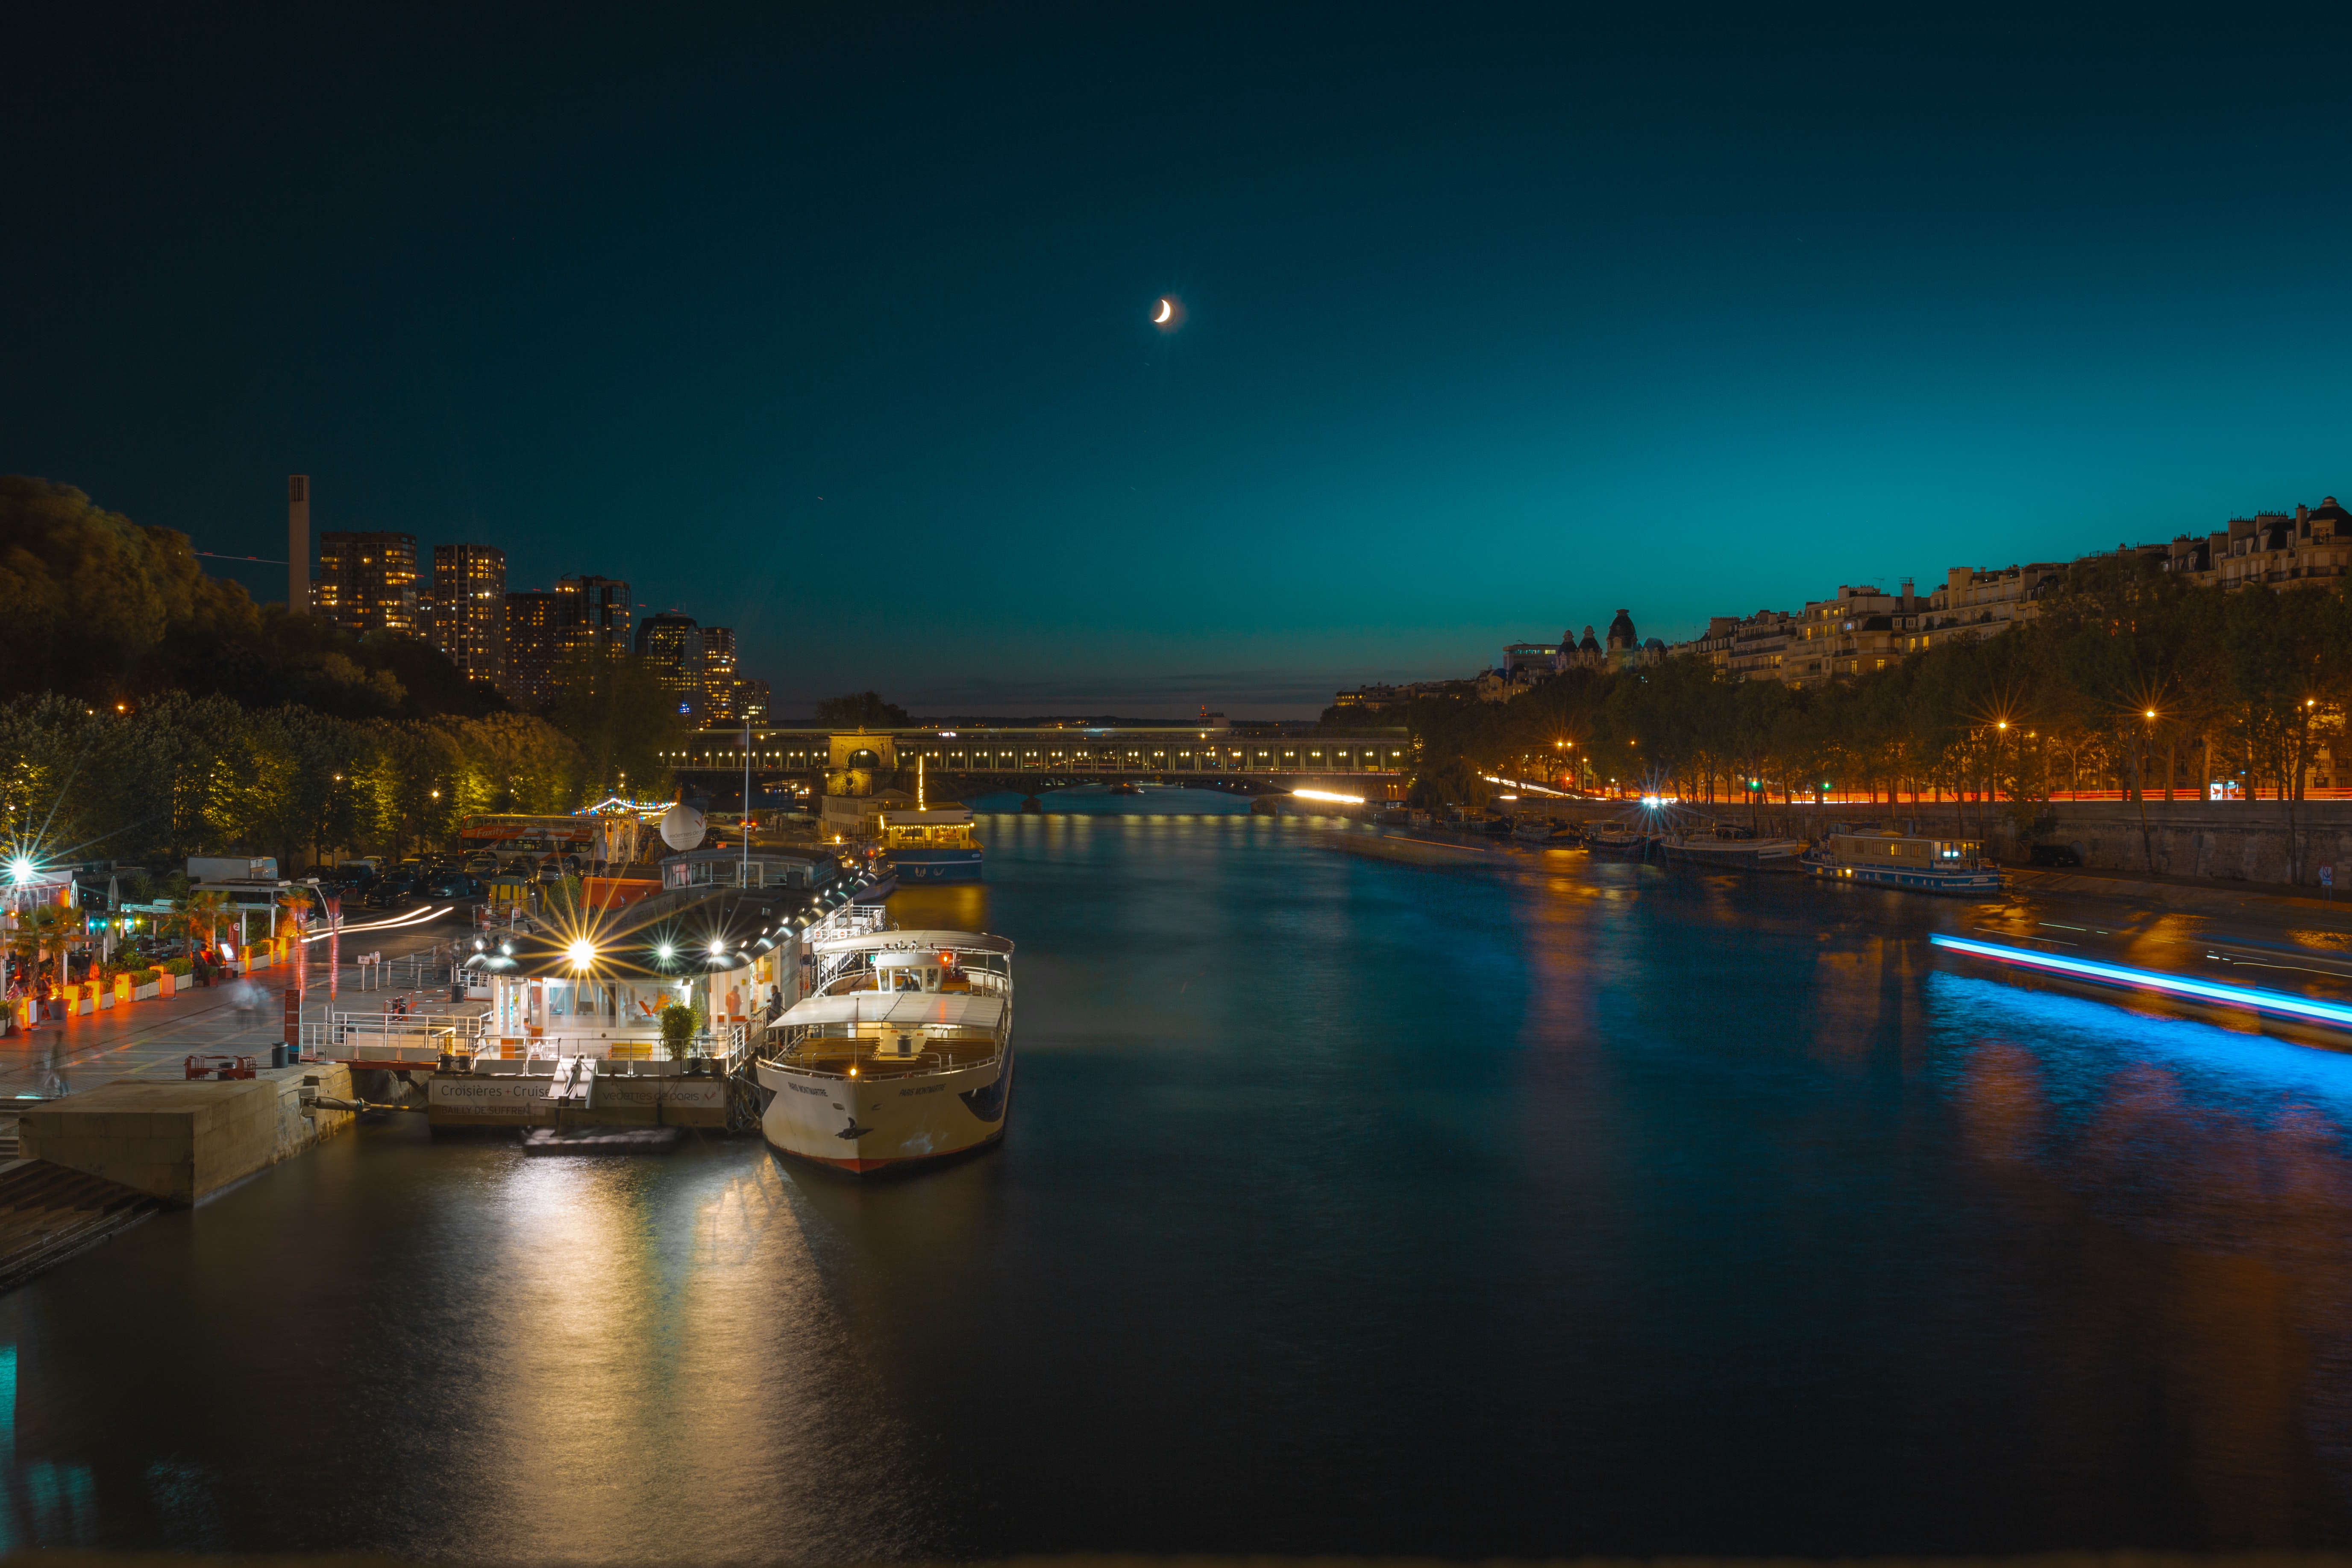 River Seine, Reasons To Fall In Love With Paris